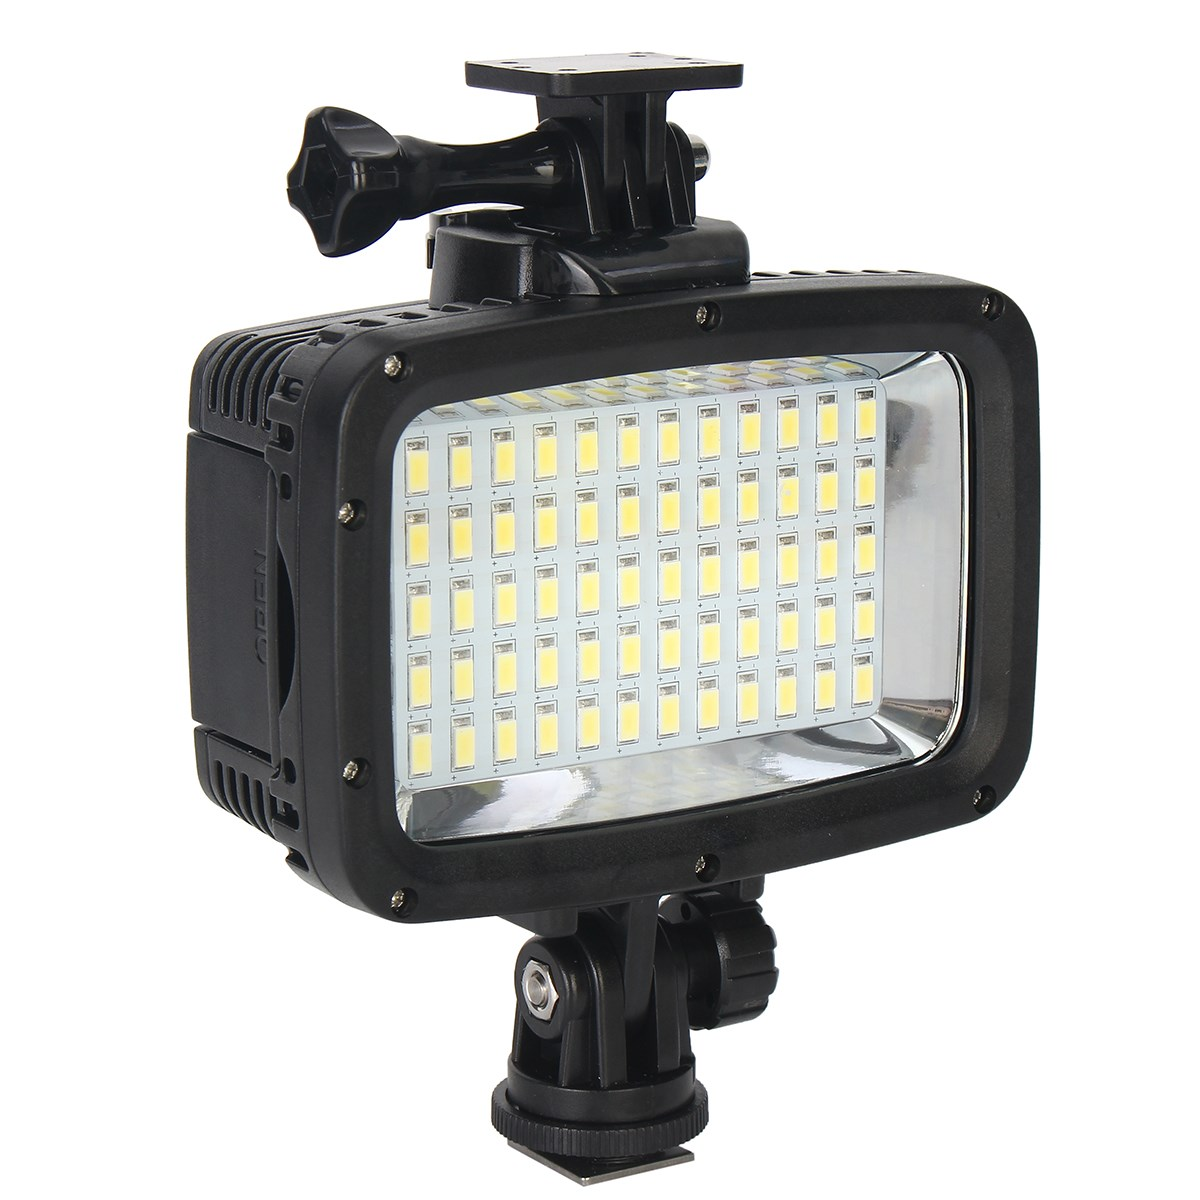 60 LED Filter Wasserdichte Kamera Video Licht Professionelle Camcorder Lampe 1800LM 40 mt Tauchen für GoPro Hero Für DSLR